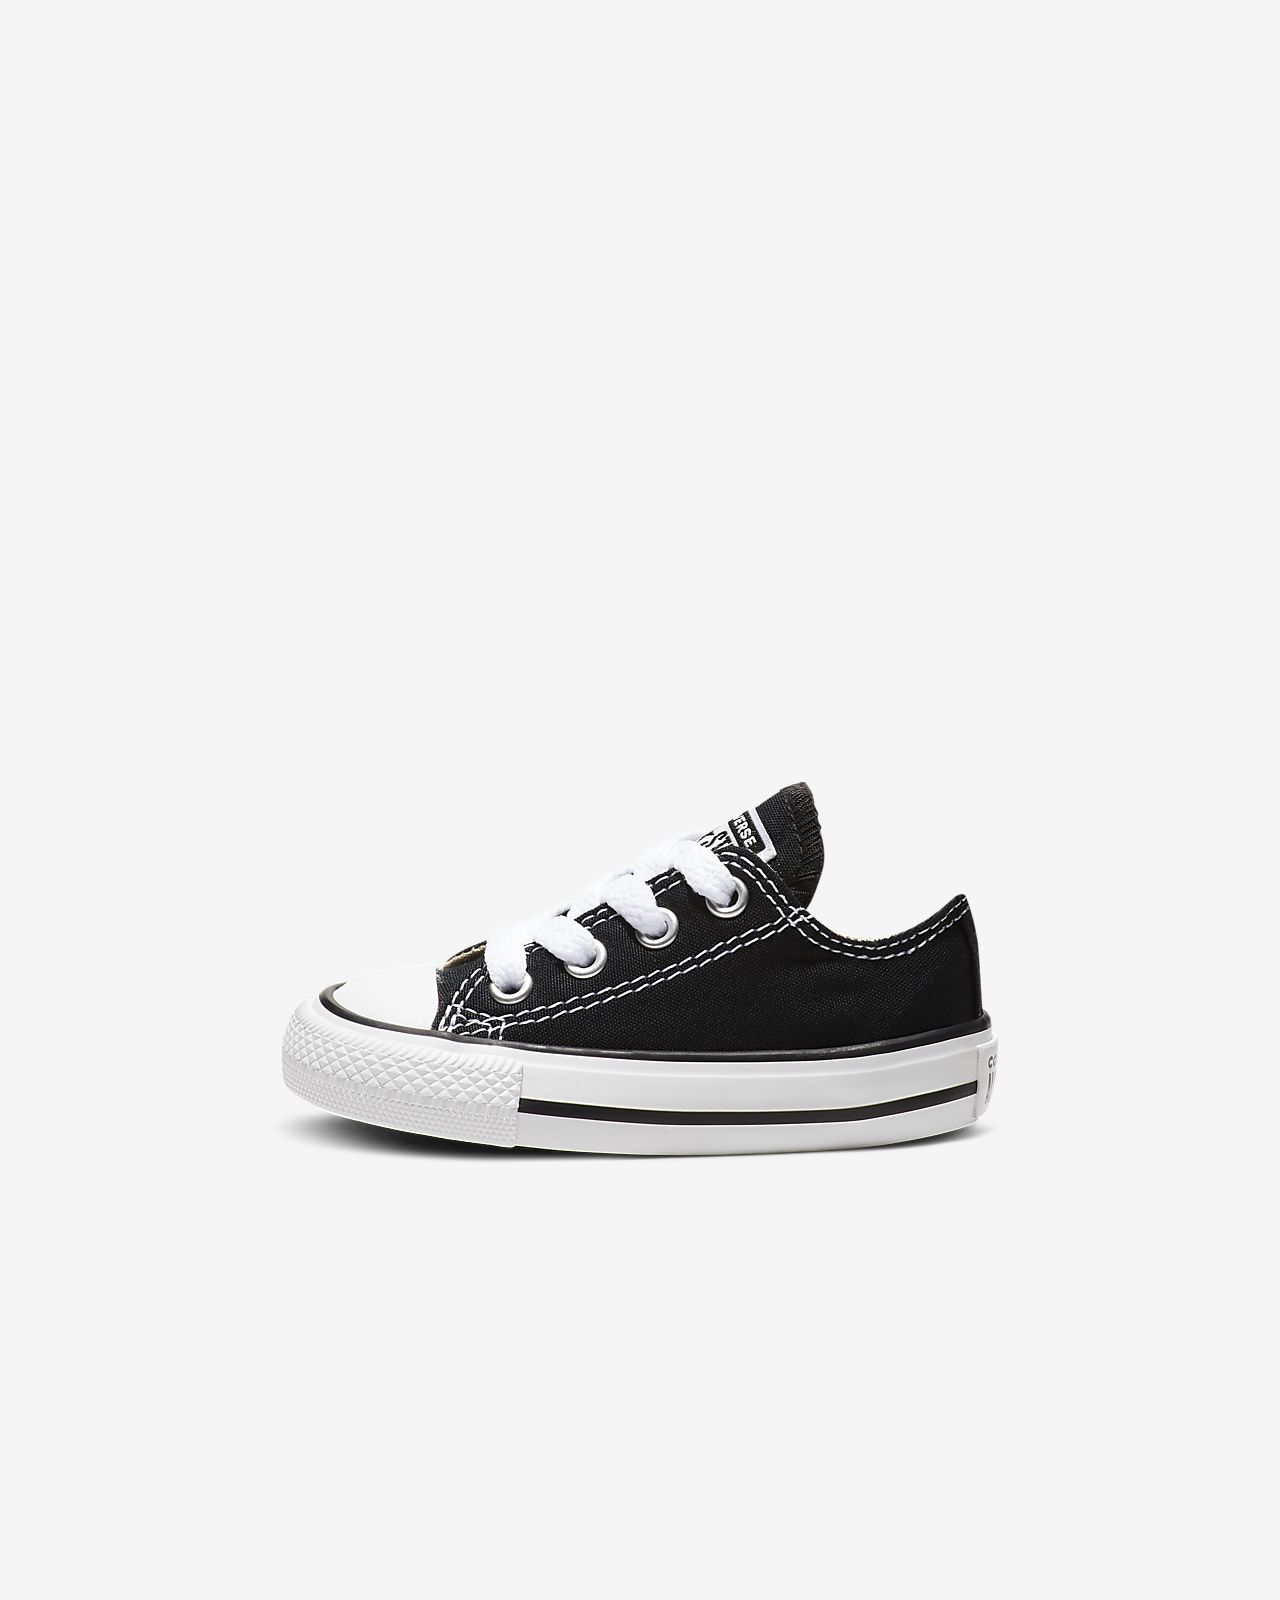 c1fa2c09a964 Converse Chuck Taylor All Star Low Top Infant Toddler Shoe. Nike.com